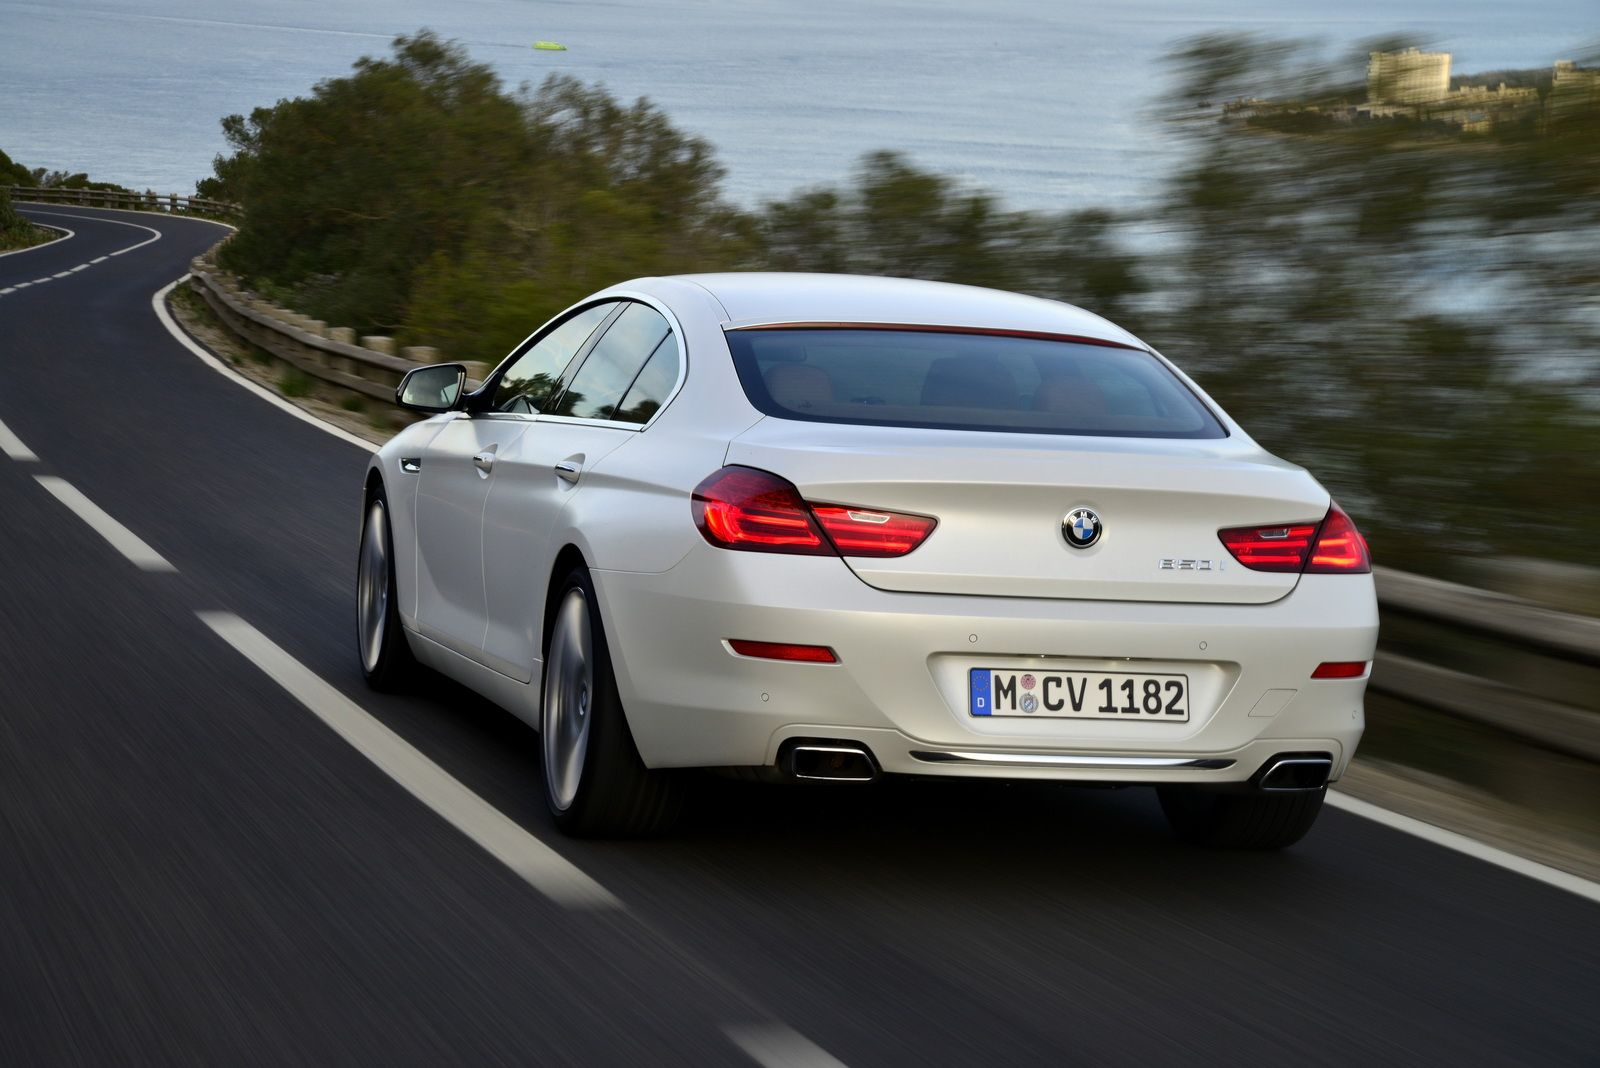 Bmw Drops More Photos Of The Updated 6 Series 216 Hd Pics Carscoops Bmw 6 Series Bmw Gran Coupe